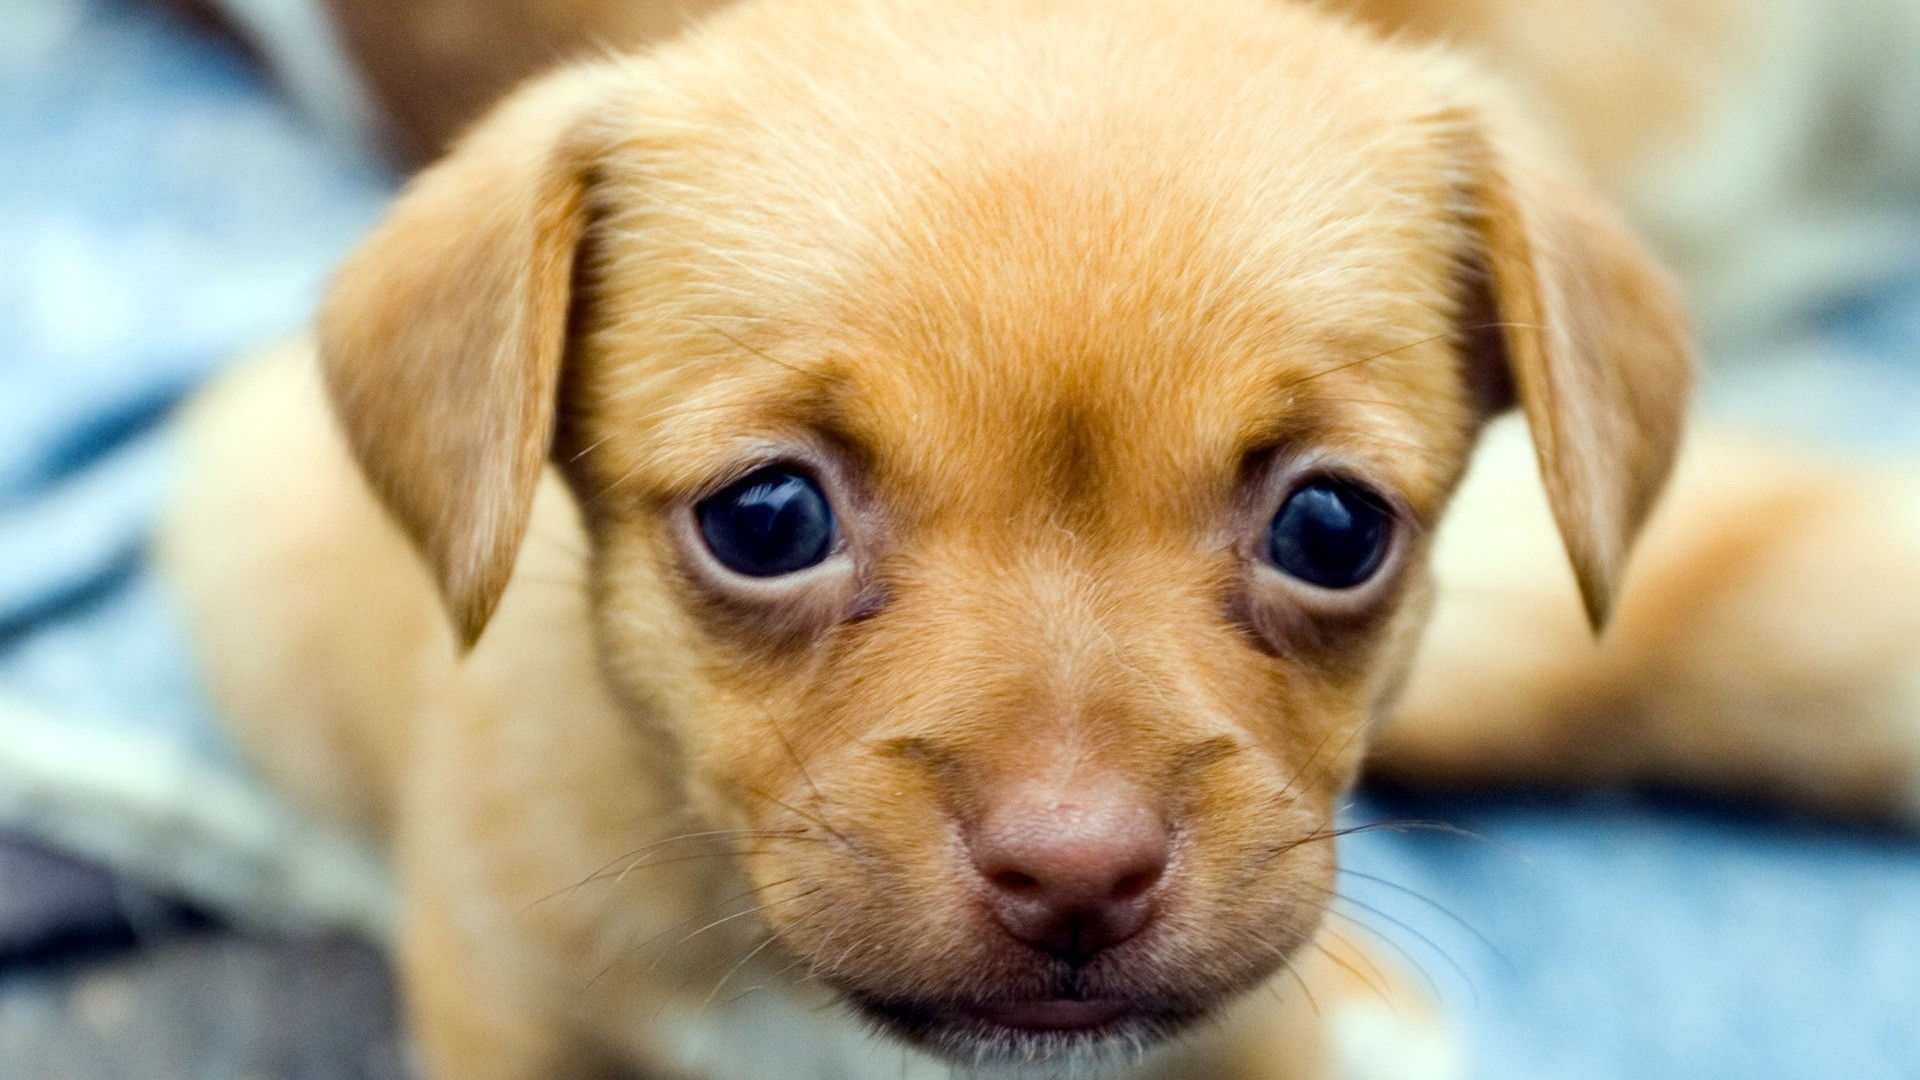 Download Wallpaper puppy, baby, look Full HD 1080p HD Background